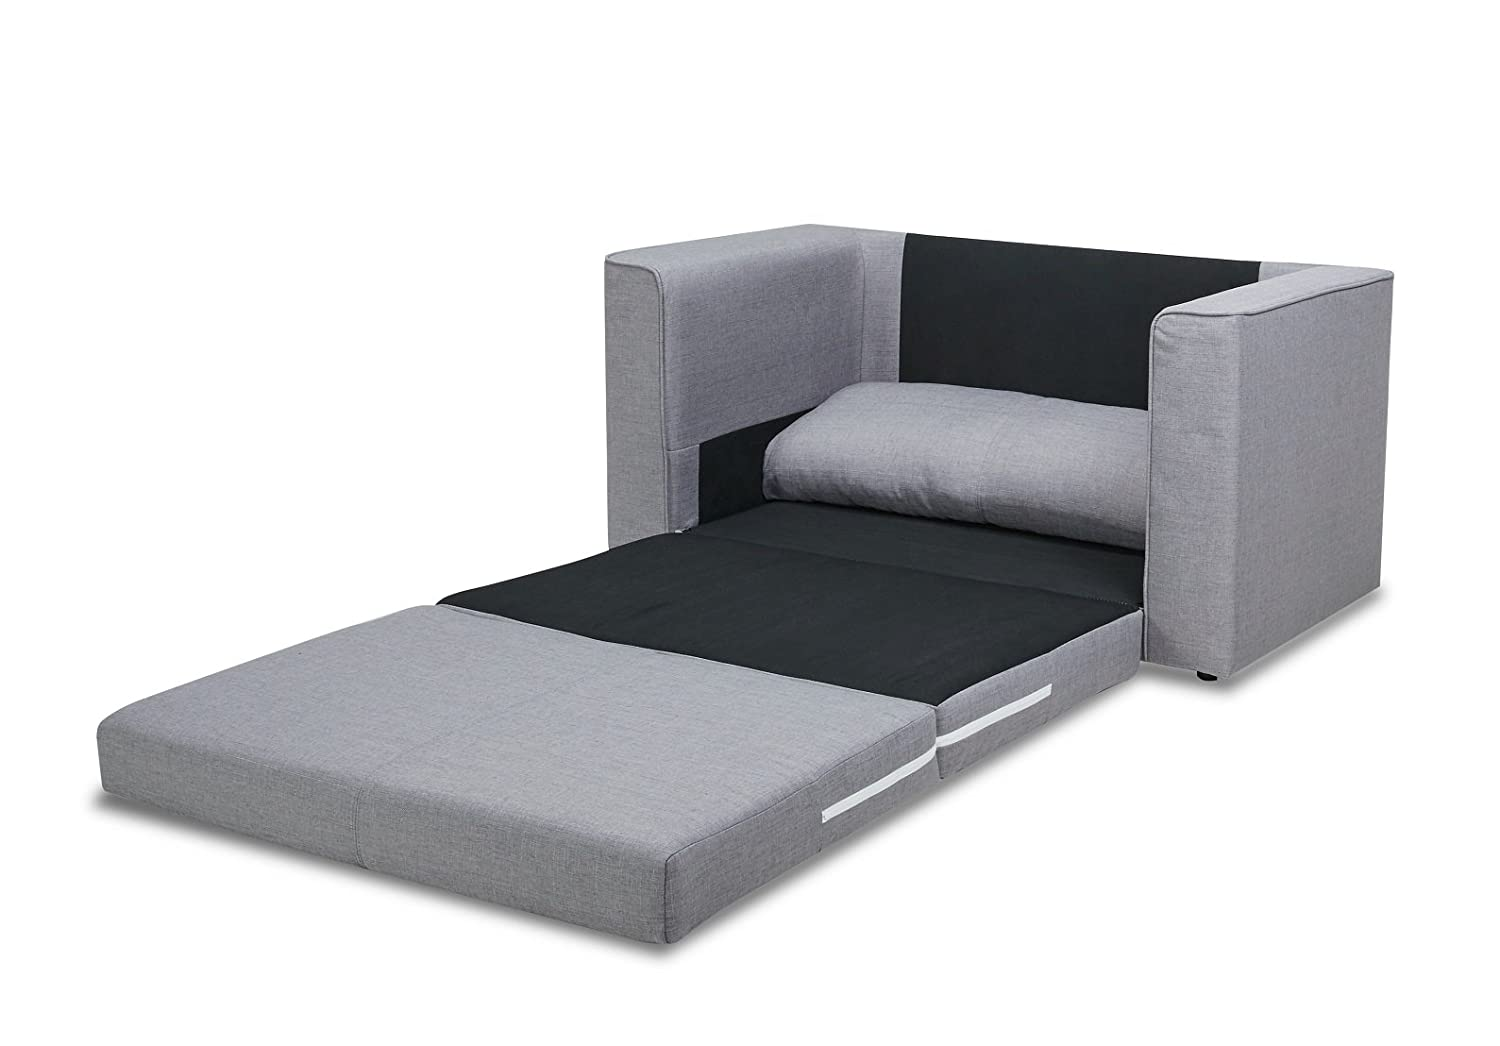 Magnificent Us Pride Furniture Ava Modern Reversible Fabric Loveseat Sofa Bed Grey Home Remodeling Inspirations Gresiscottssportslandcom